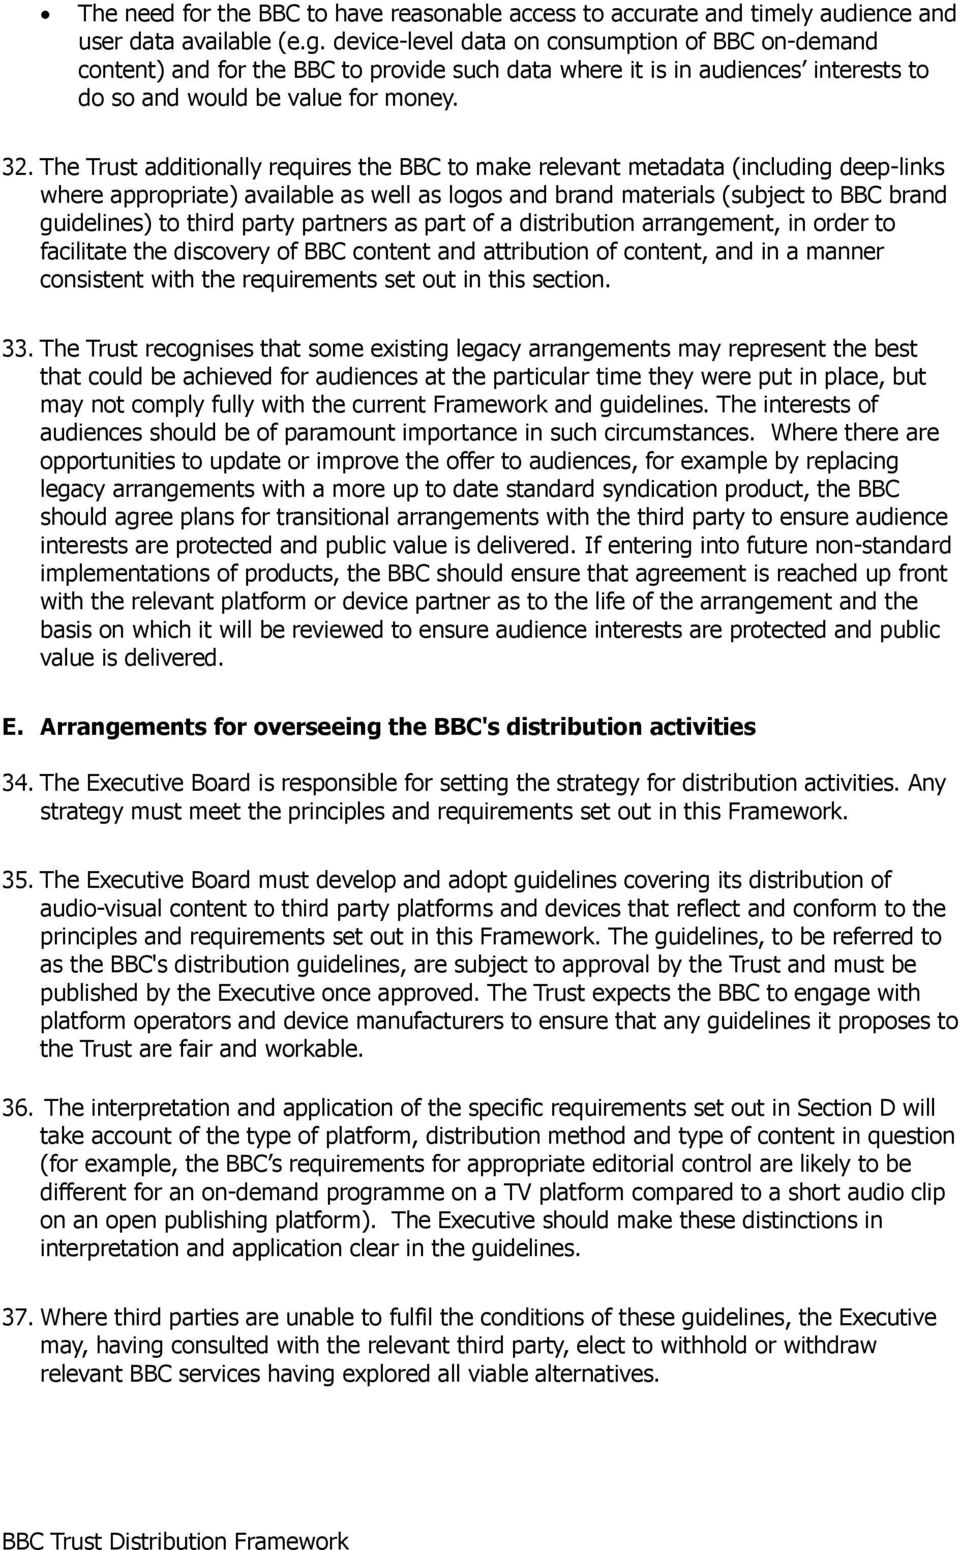 The Trust additionally requires the BBC to make relevant metadata (including deep-links where appropriate) available as well as logos and brand materials (subject to BBC brand guidelines) to third